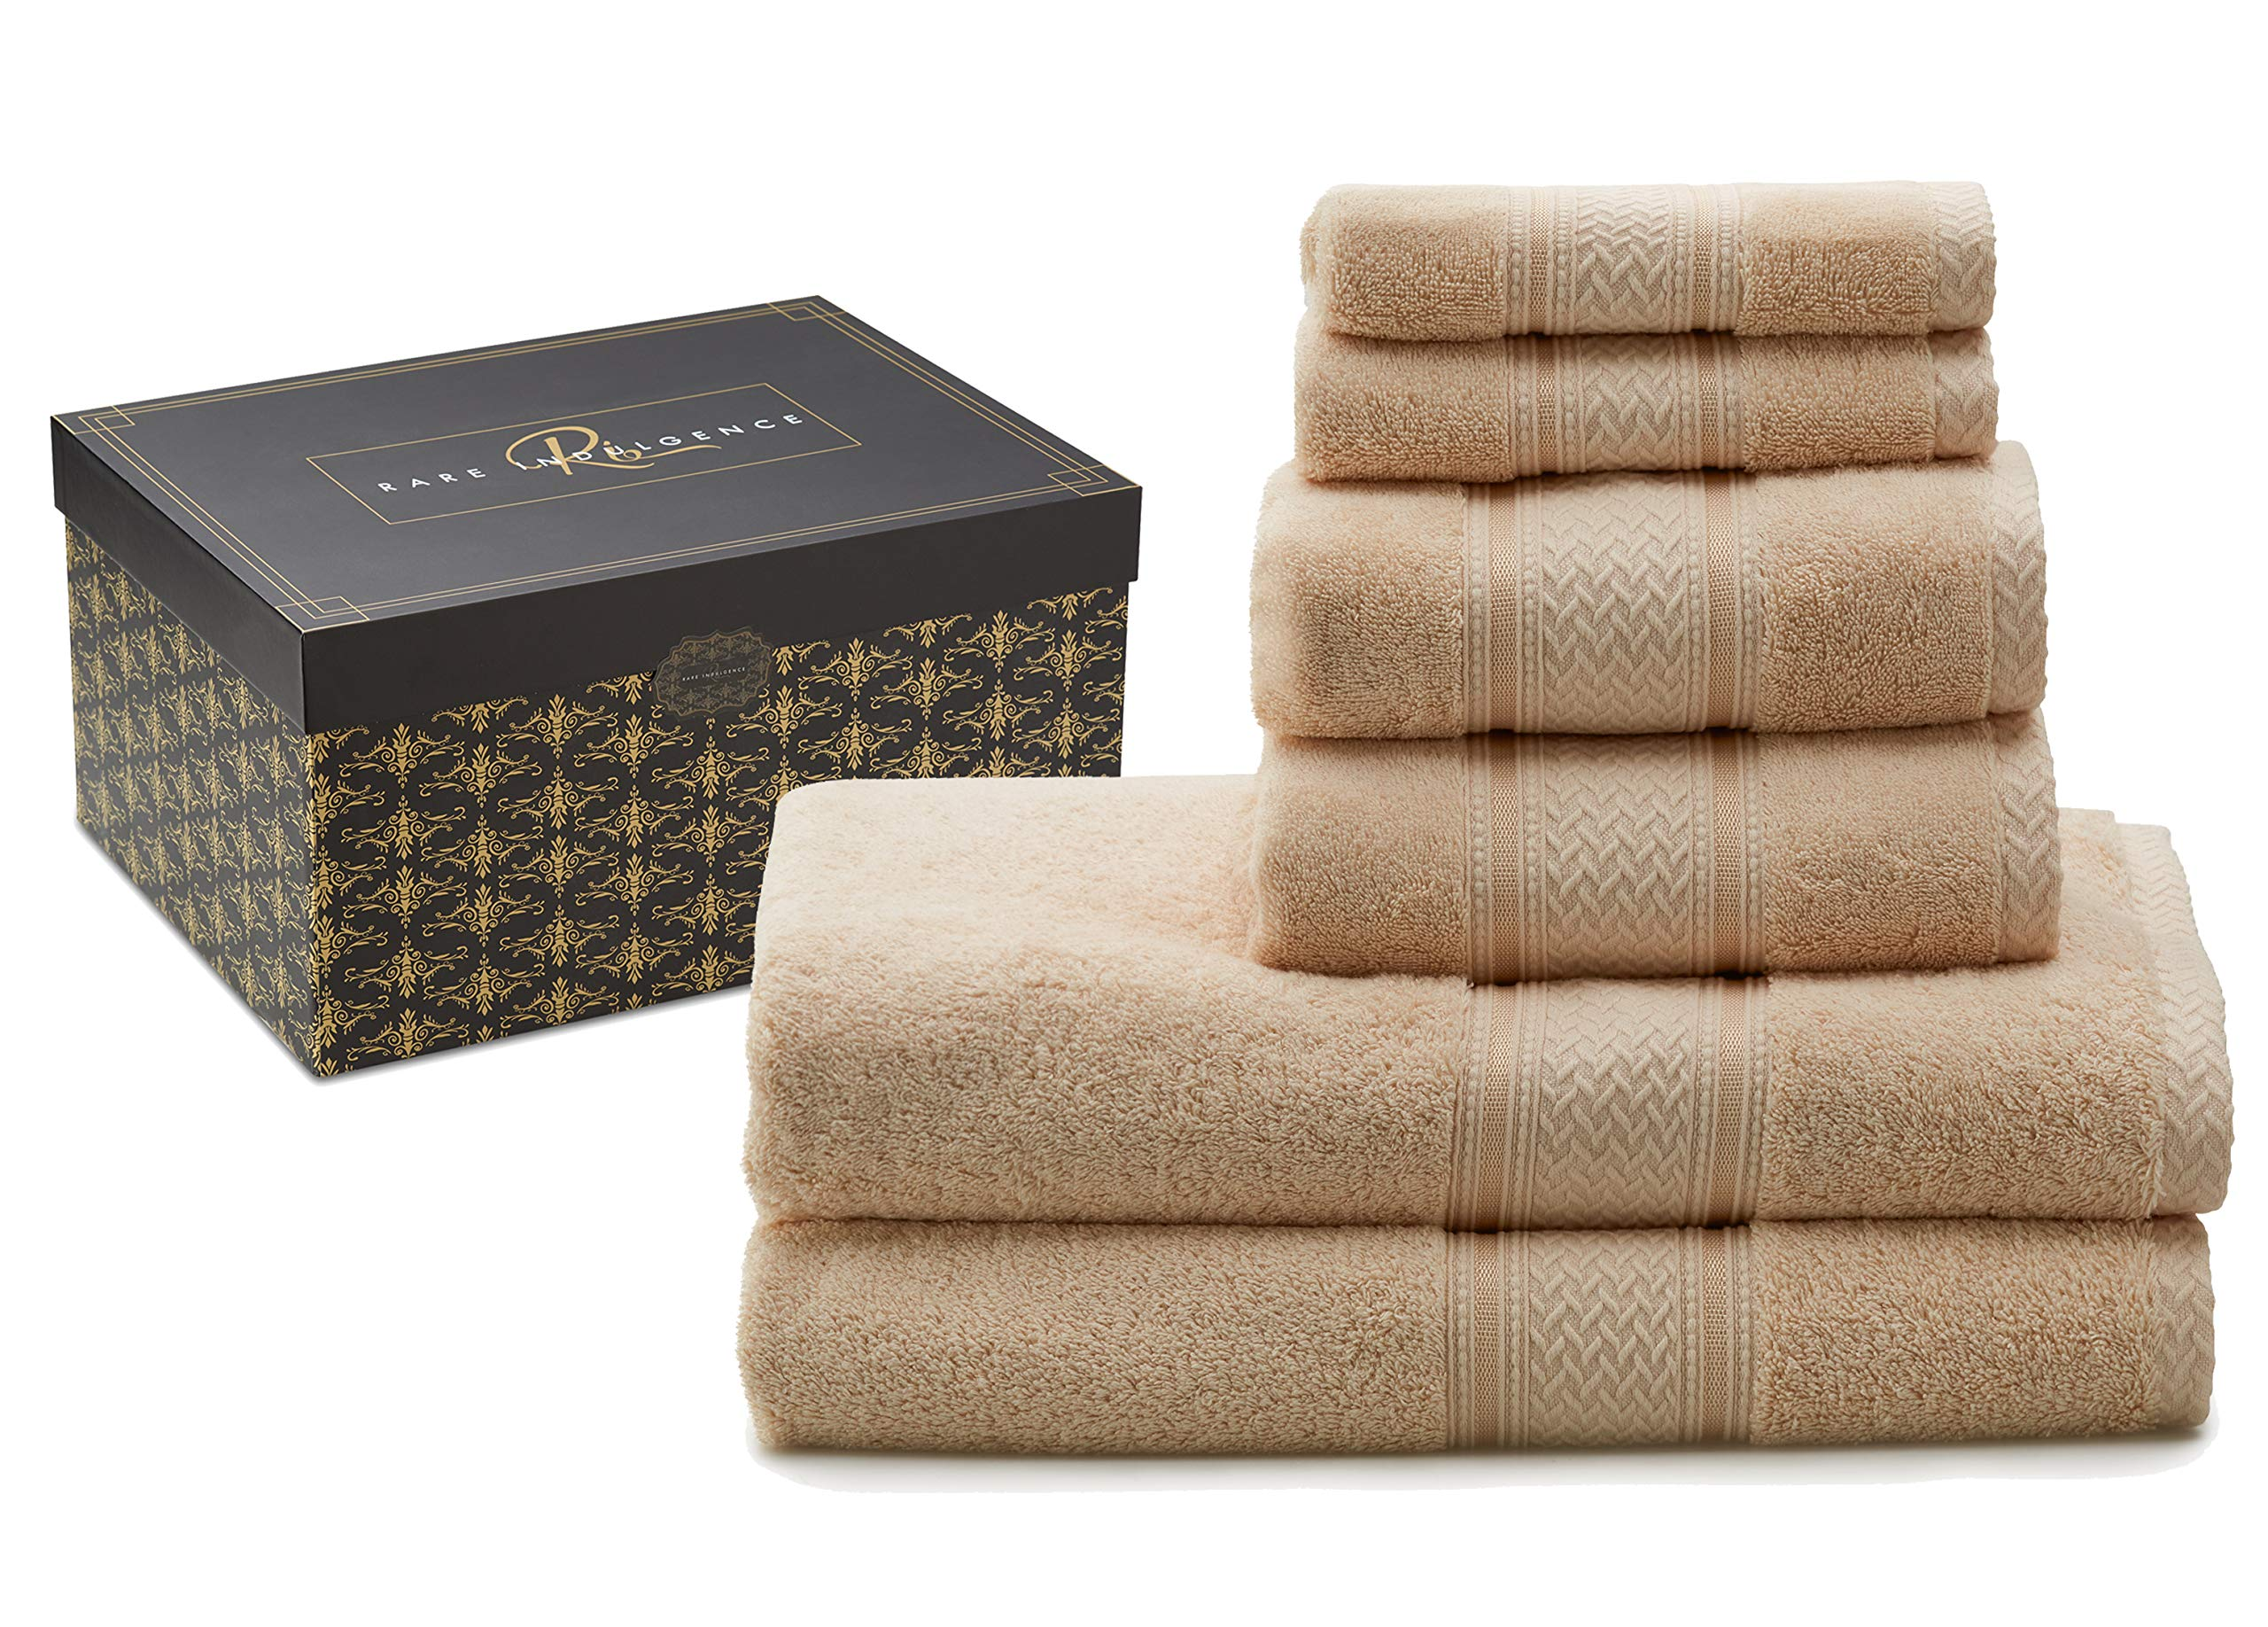 Rare Indulgence 100% Egyptian Cotton Extra Large 6 Piece Luxury Hotel Quality Towel Set 880 Gram.Beautiful Gift Boxed Perfect for Your Home or Housewarming, Christmas, Wedding, Engagement Present. by Rare Indulgence